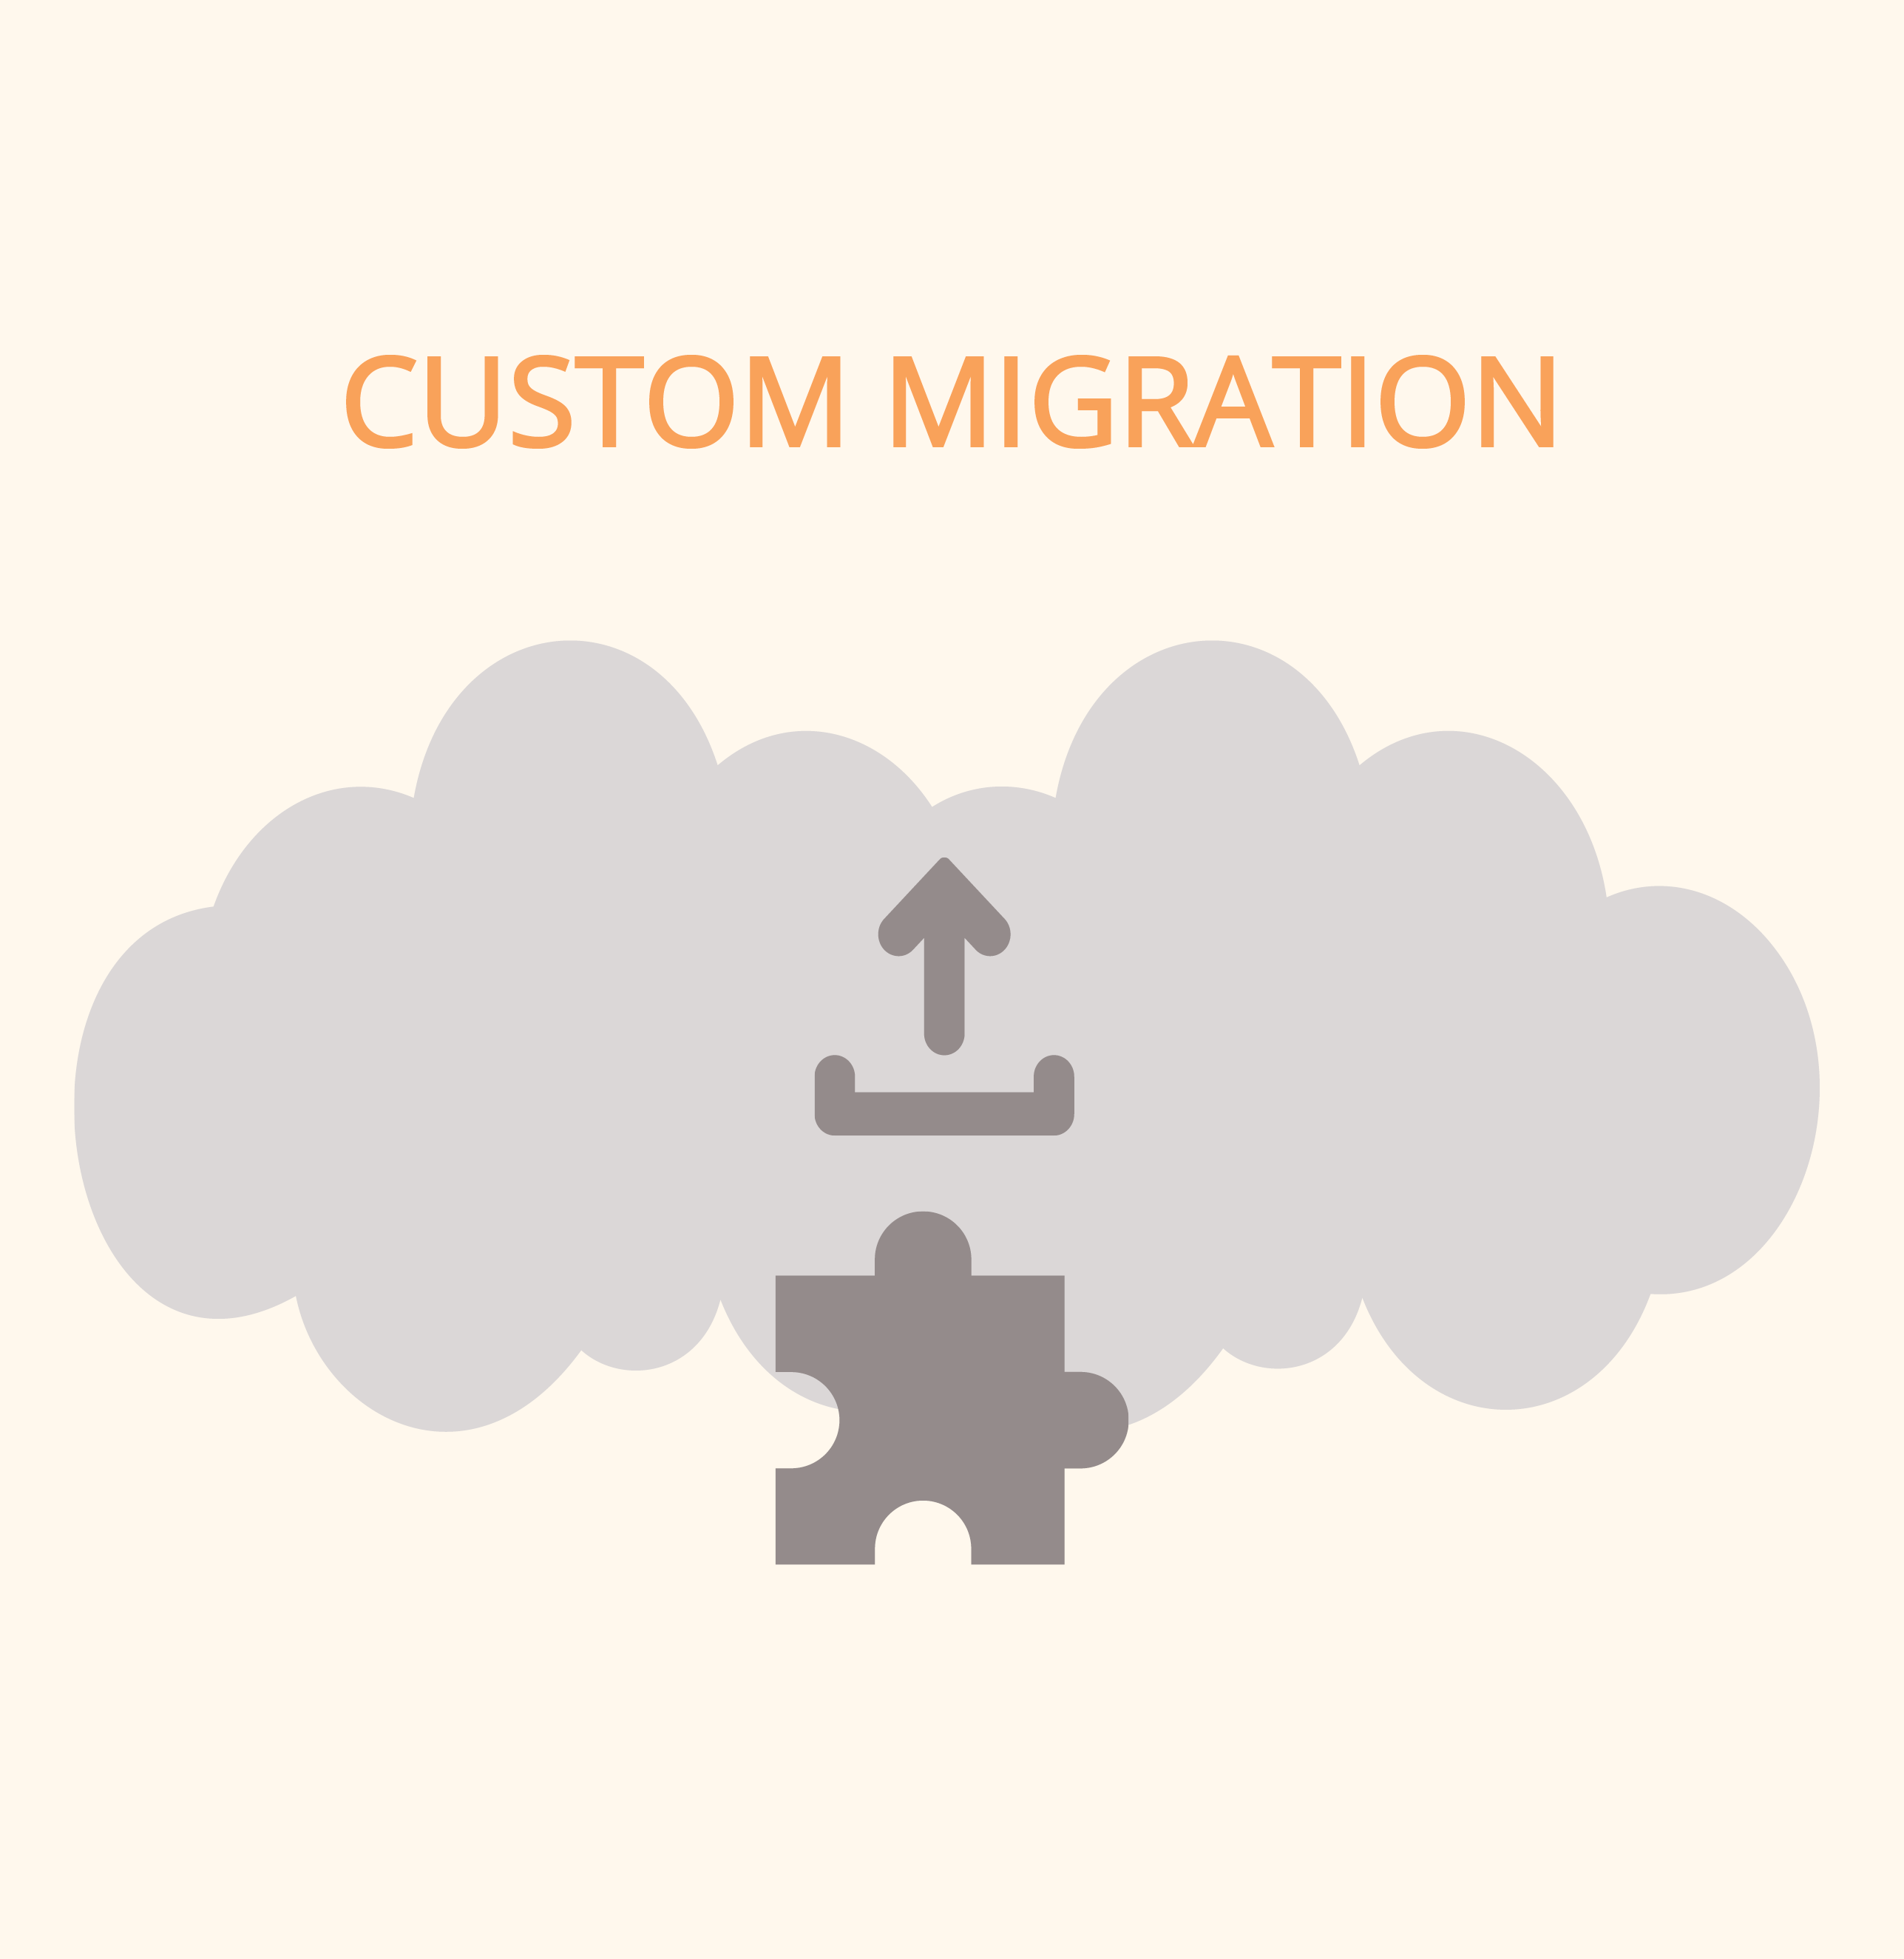 CustomMigration